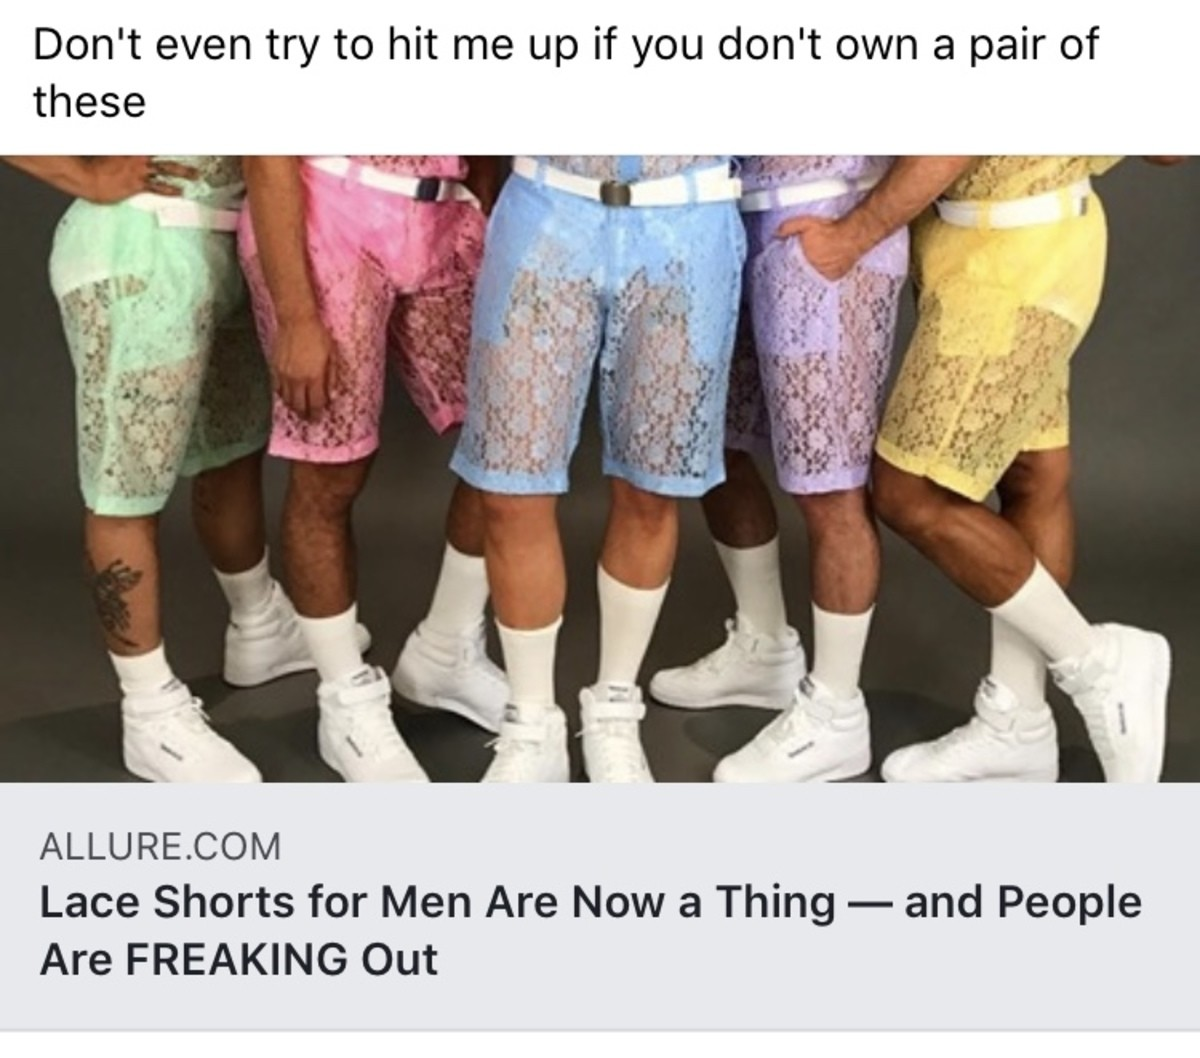 Manly Shorts. .. Those look gay as . Where can I buy them?